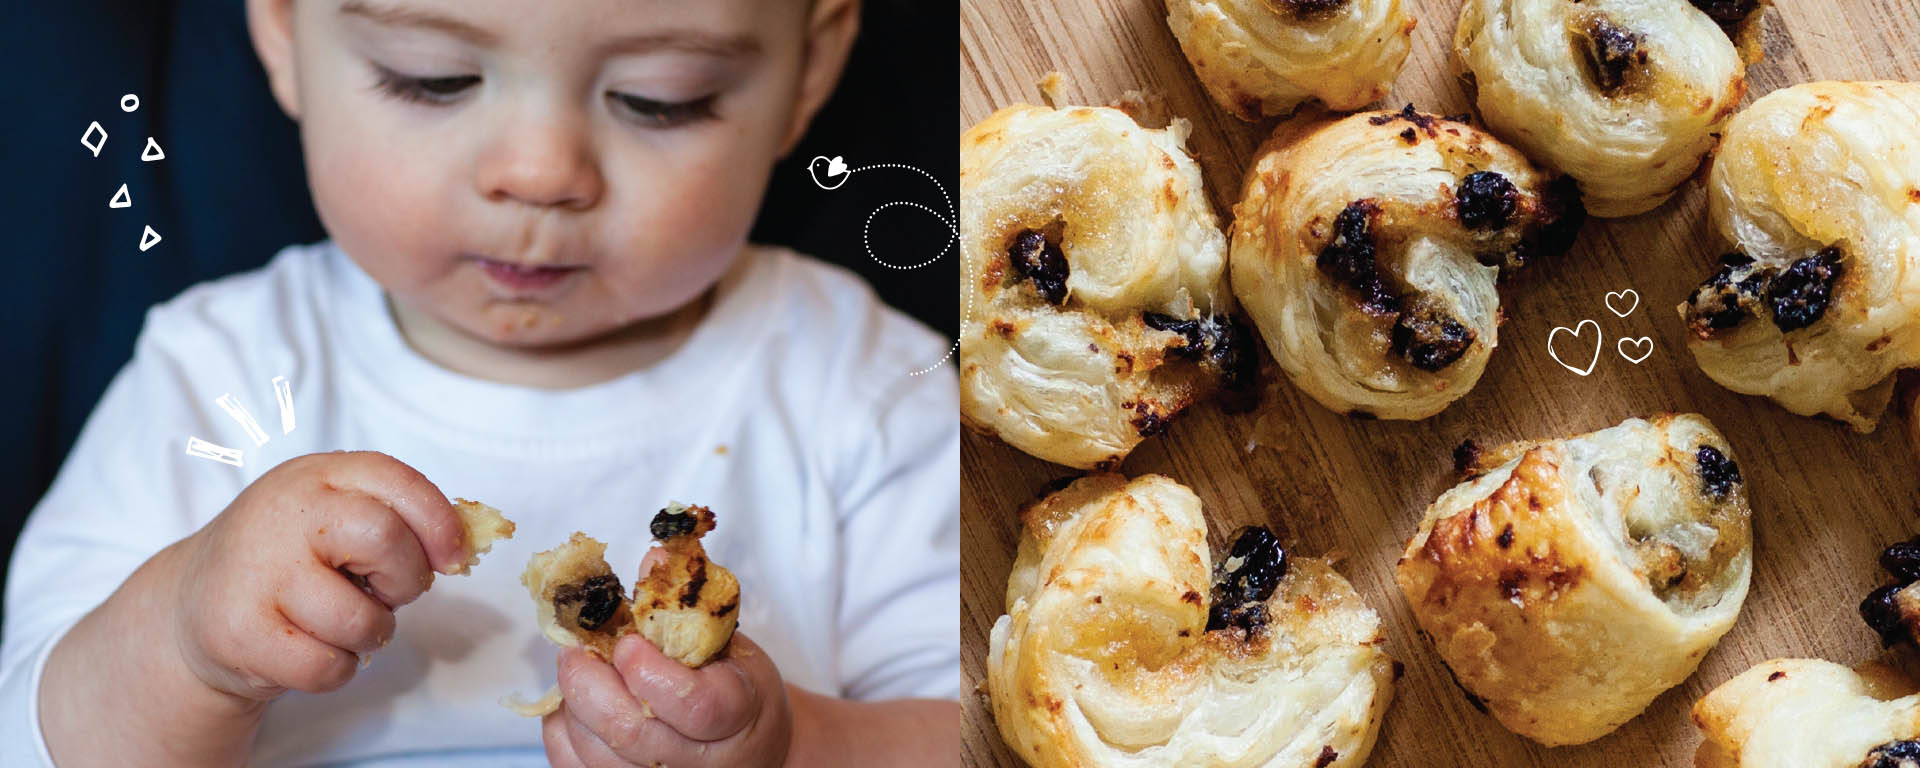 Baby Led Feeding Branding and website for new food startup Irish company Irish Food Blogger Design Website Footer Design